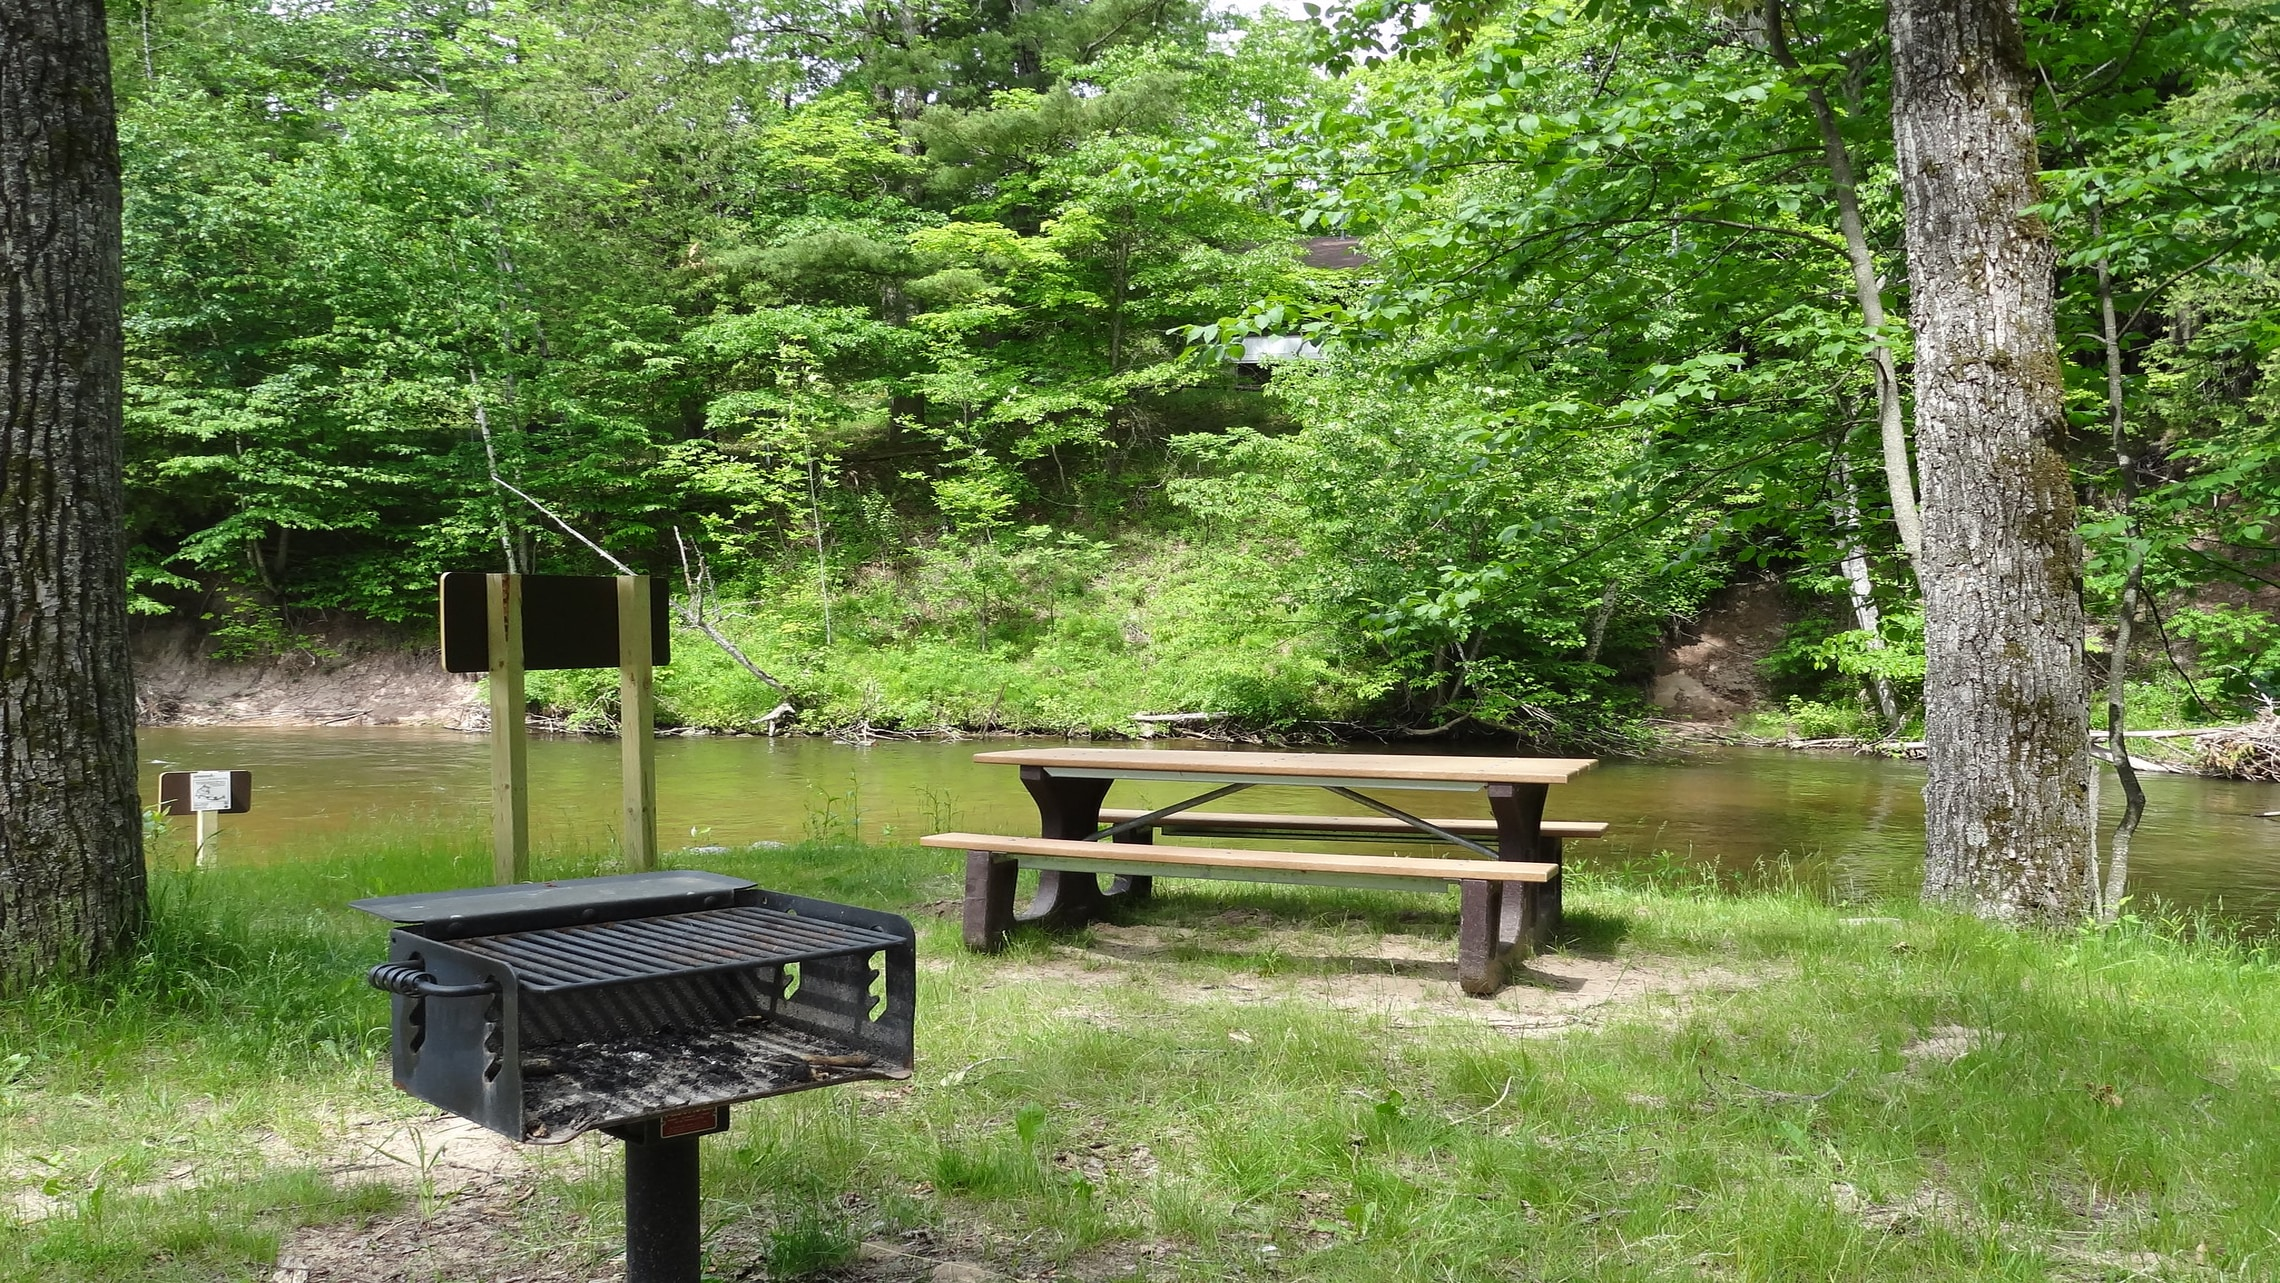 a picnic area on the Pine River